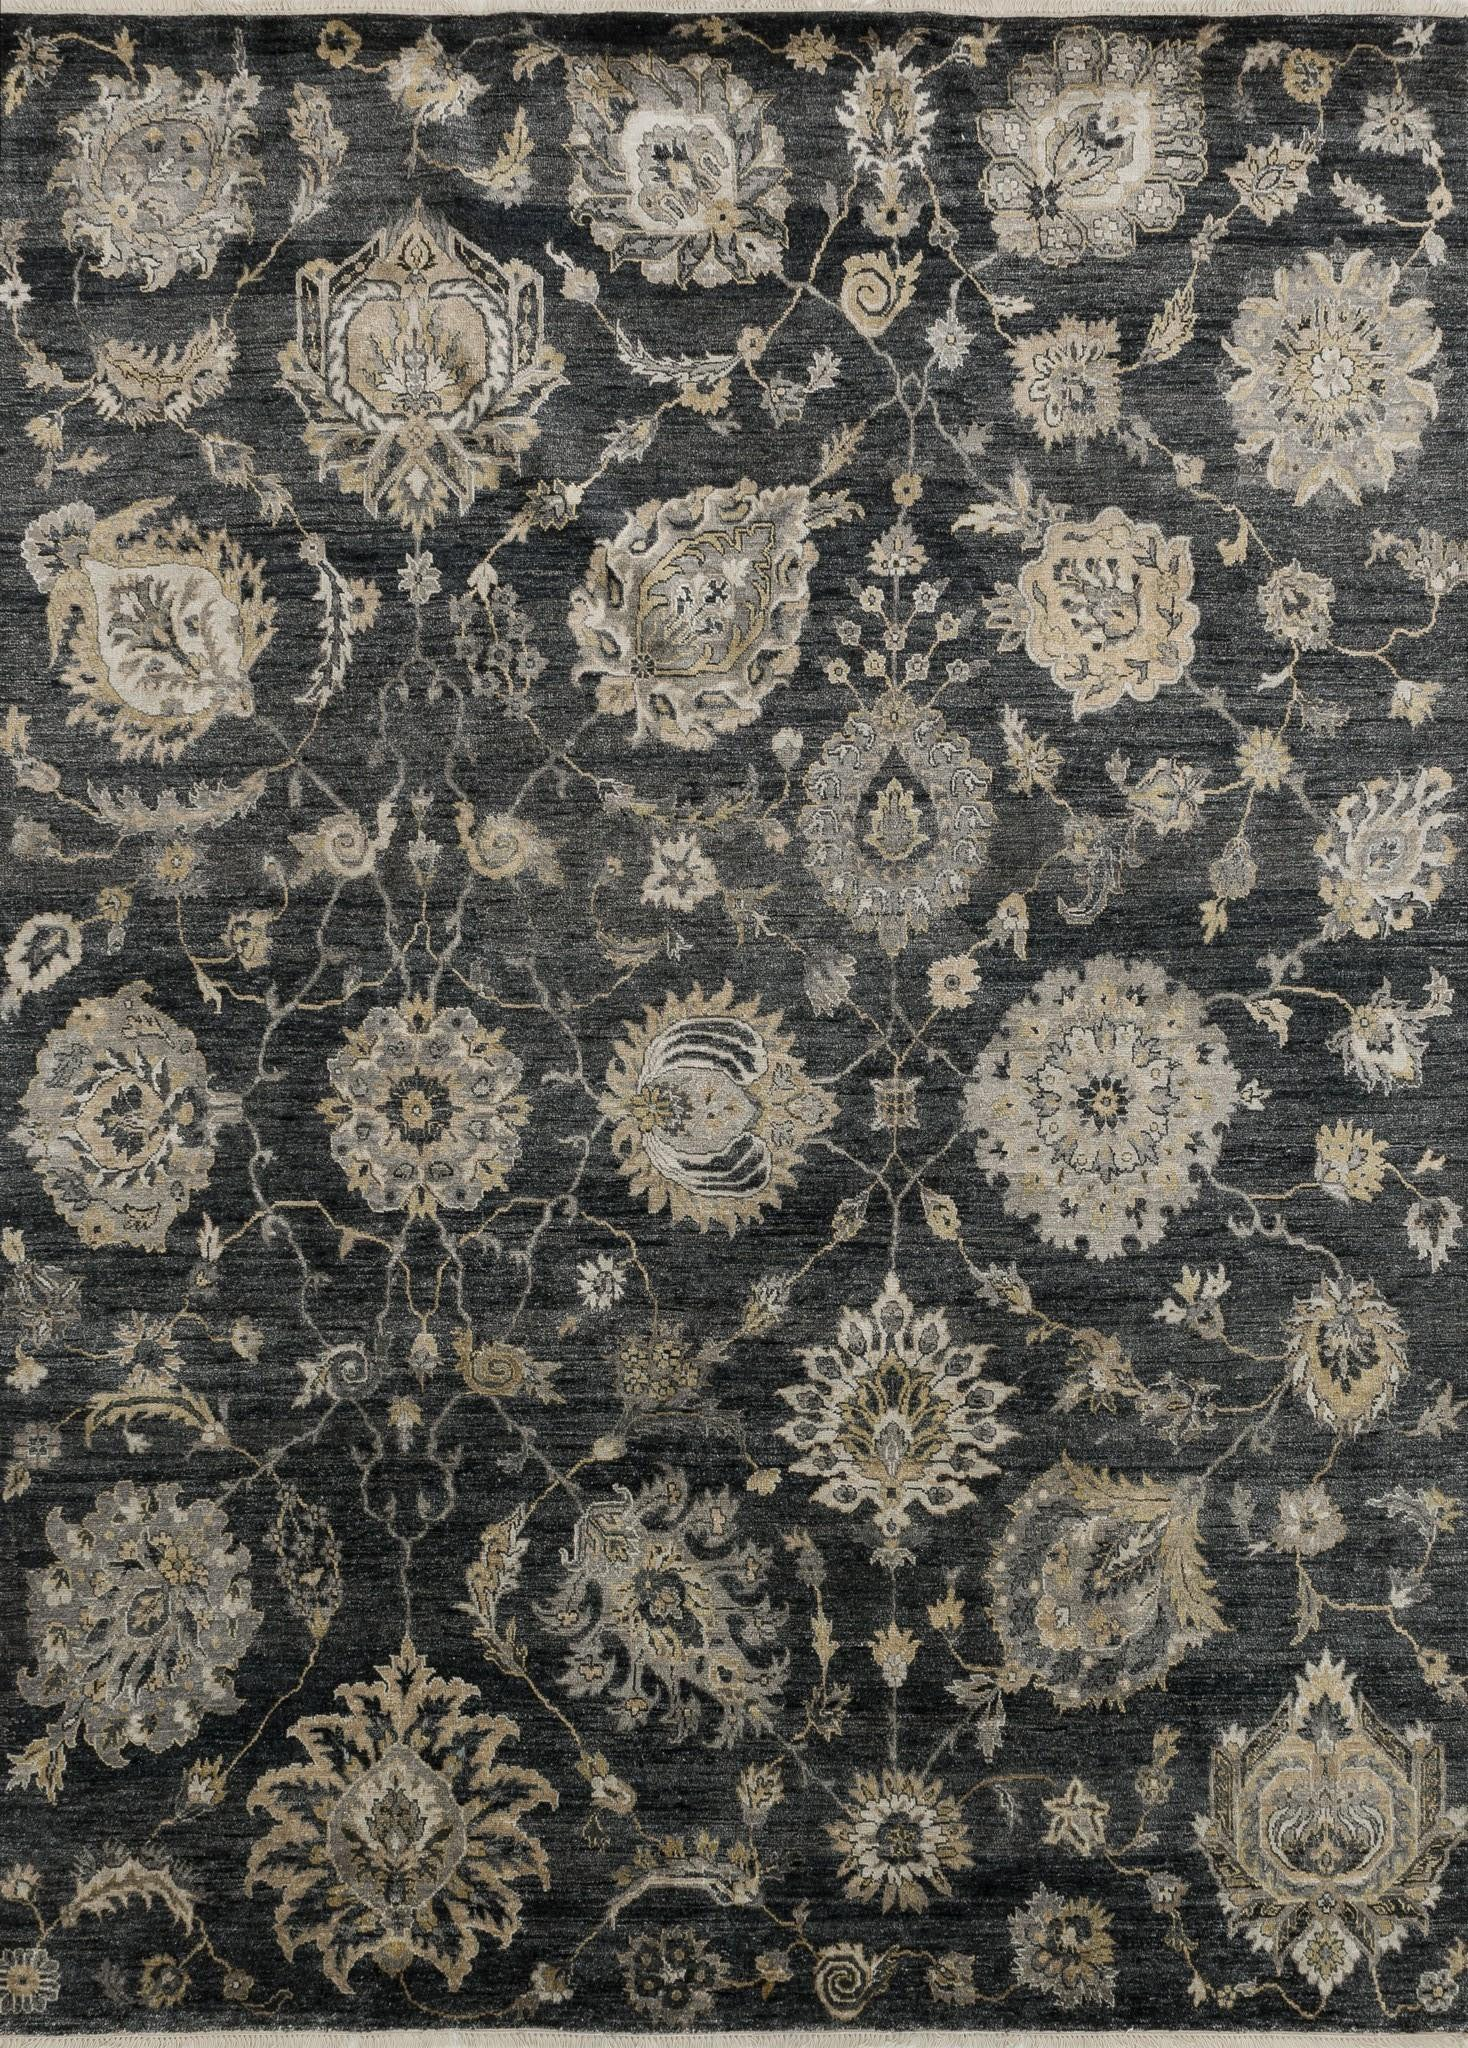 Loloi Kensington KG-07 Charcoal Area Rug by Henrietta Spencer-Churchill main image